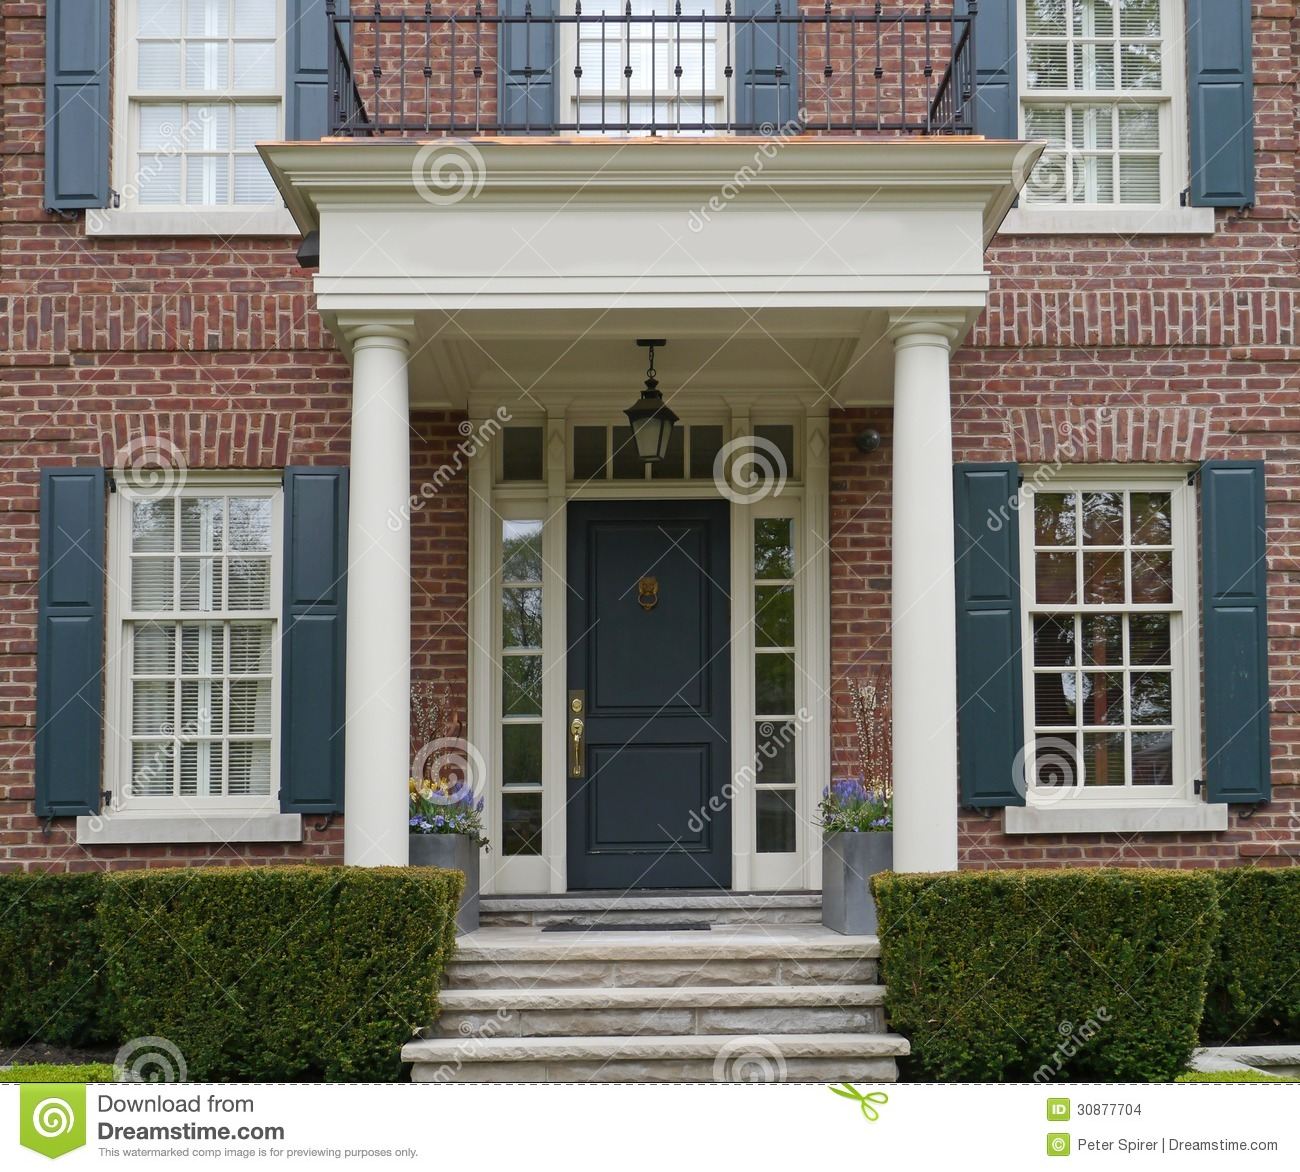 Front Door Of House With Porch Stock Photo Image Of Steps Upper 30877704